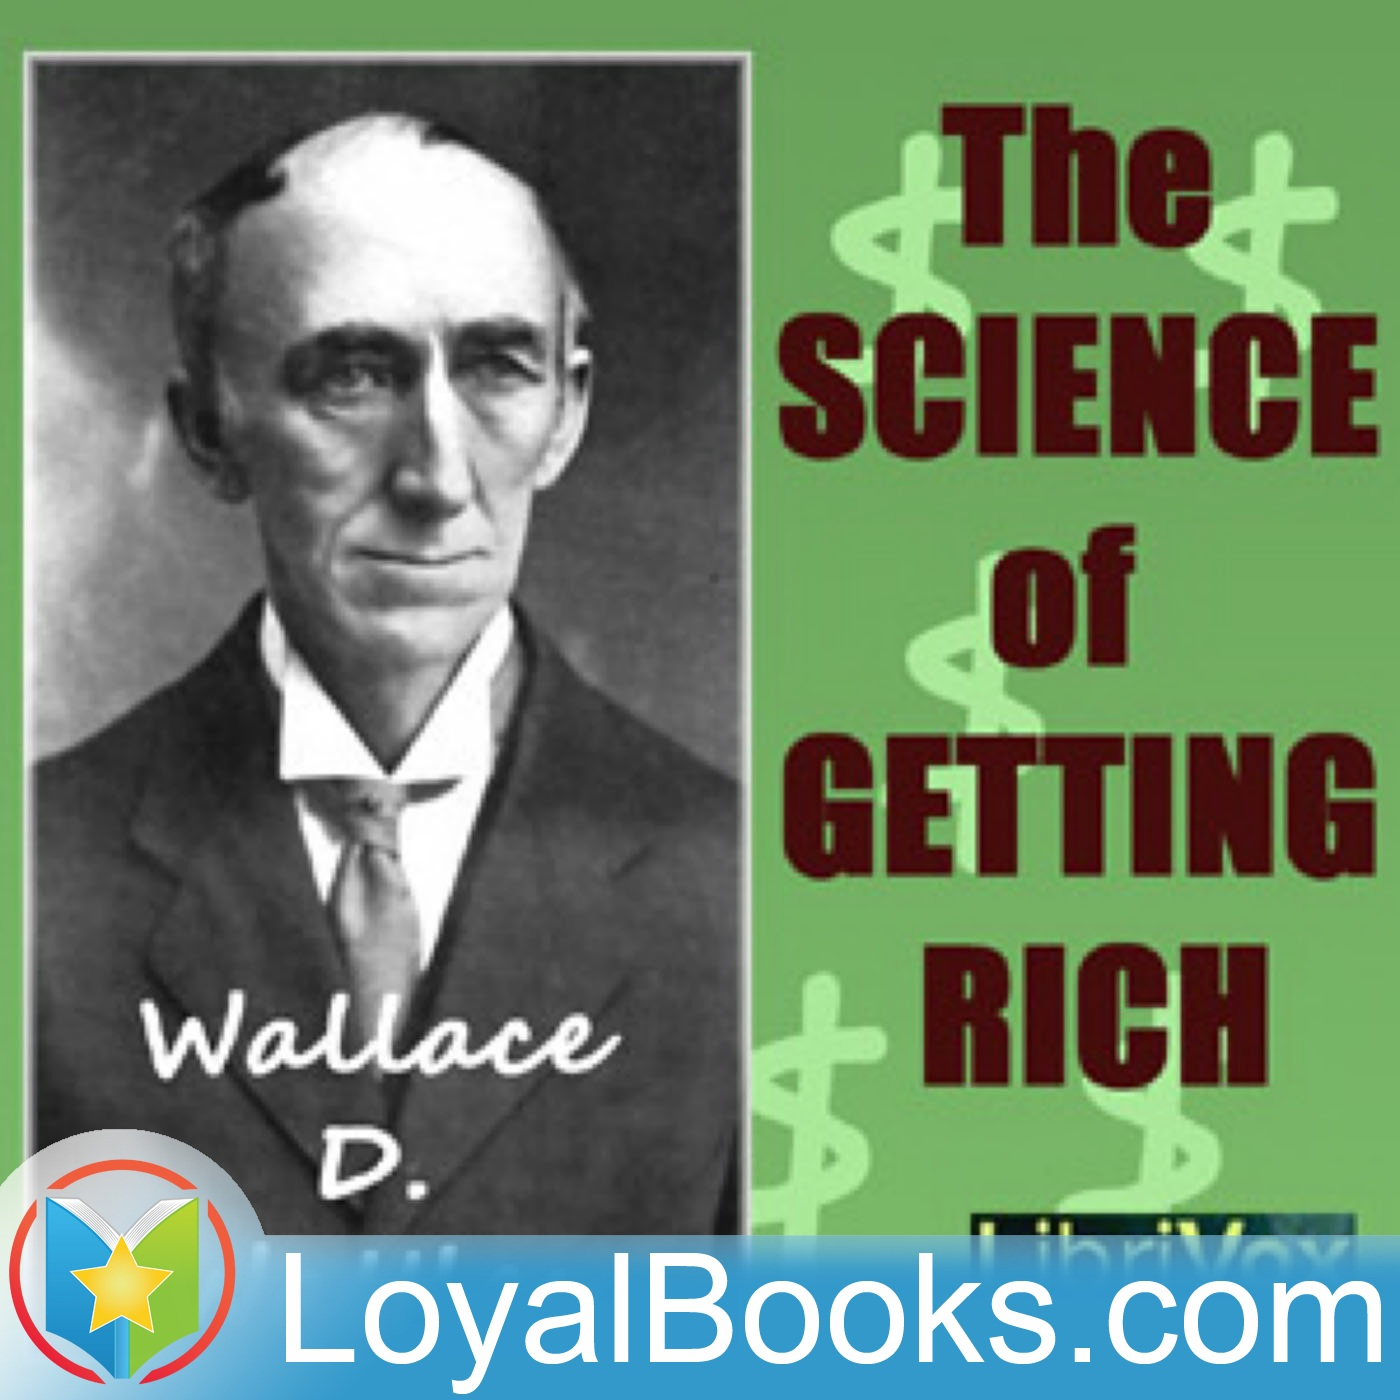 <![CDATA[The Science of Getting Rich by Wallace D. Wattles]]>